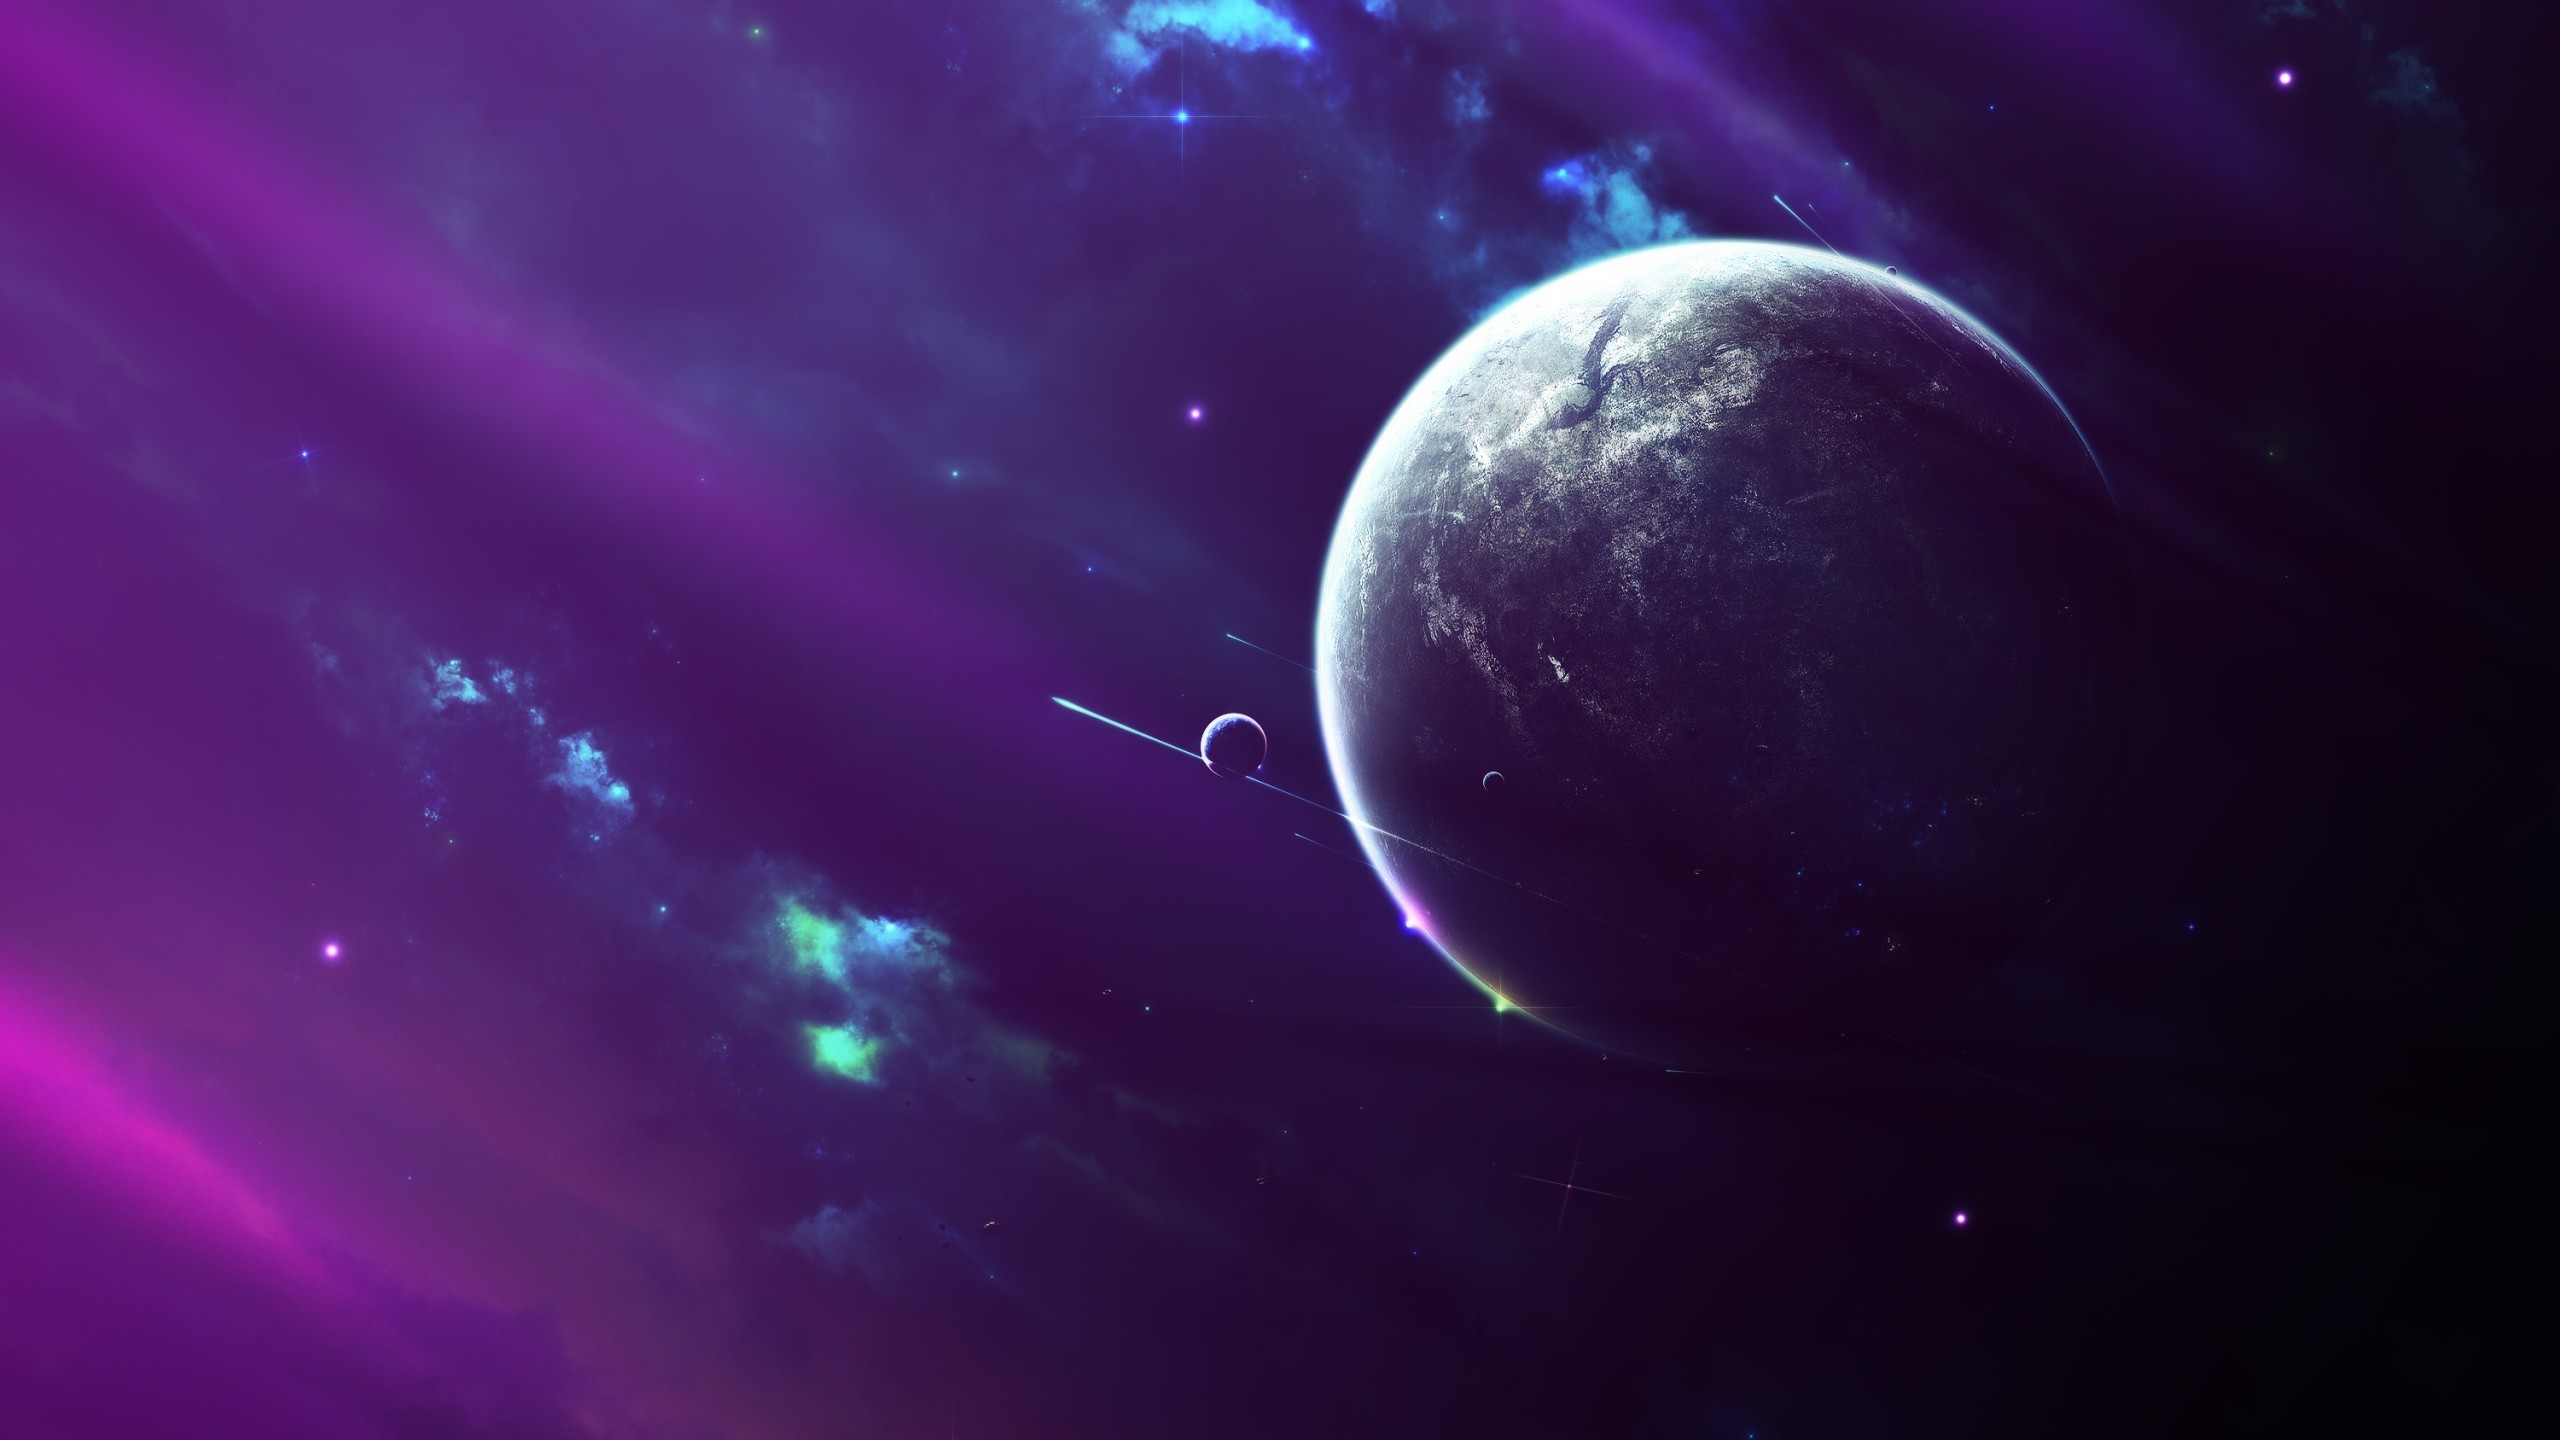 planet, Space, Fantasy art Wallpapers HD / Desktop and Mobile Backgrounds